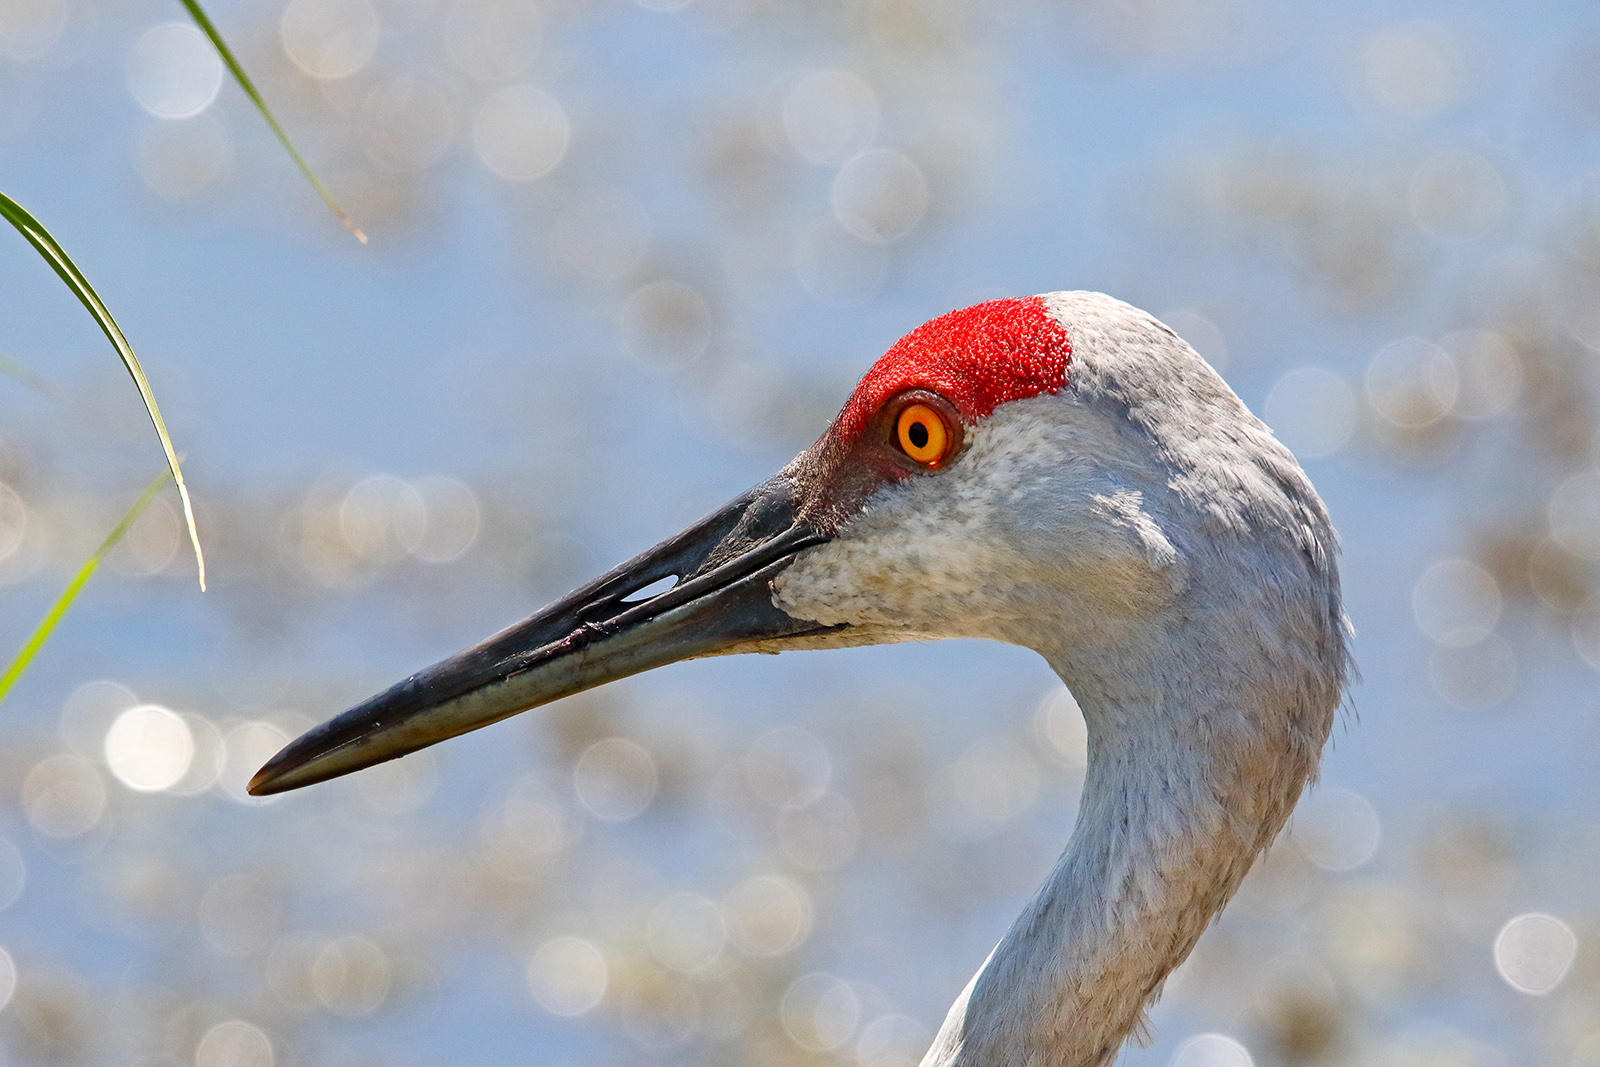 Local photographer Gordon Garcia captured this shot of a sandhill crane along Batavia Road inside the east entrance of the lab. nature, wildlife, animal, bird, sandhill crane Photo: Gordon Garcia